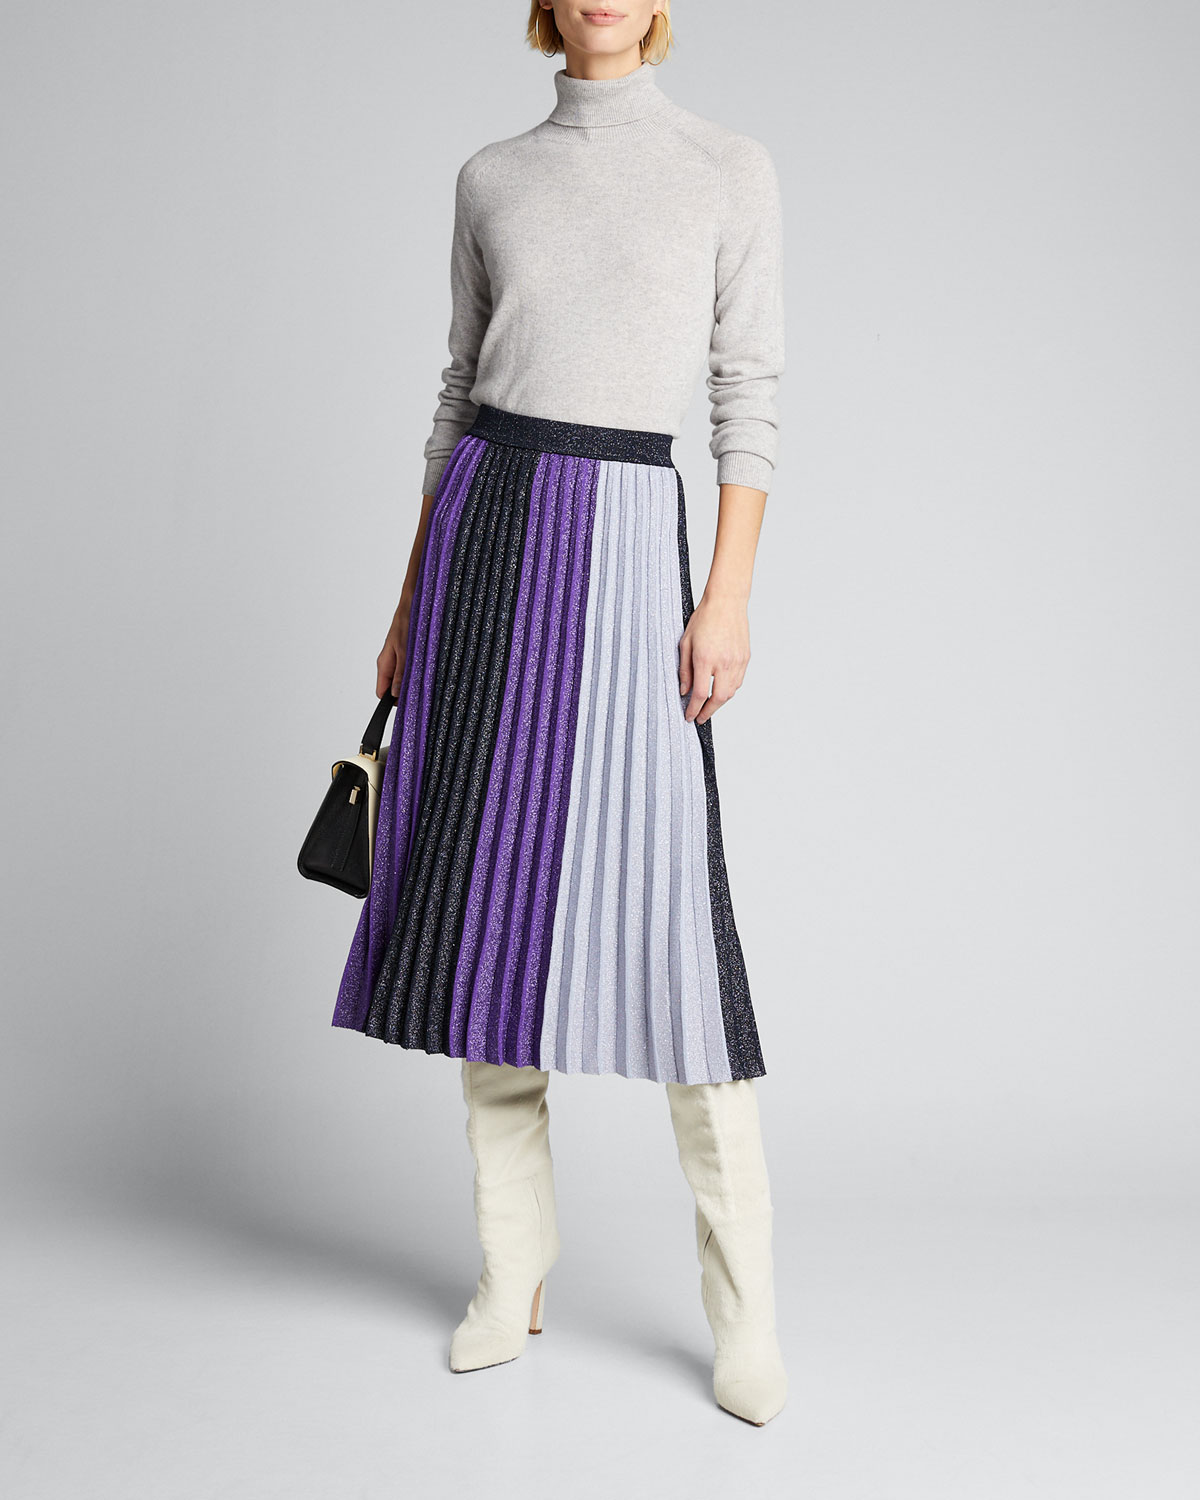 Derek Lam 10 Crosby Skirts COLORBLOCK PLEATED METALLIC MIDI SKIRT